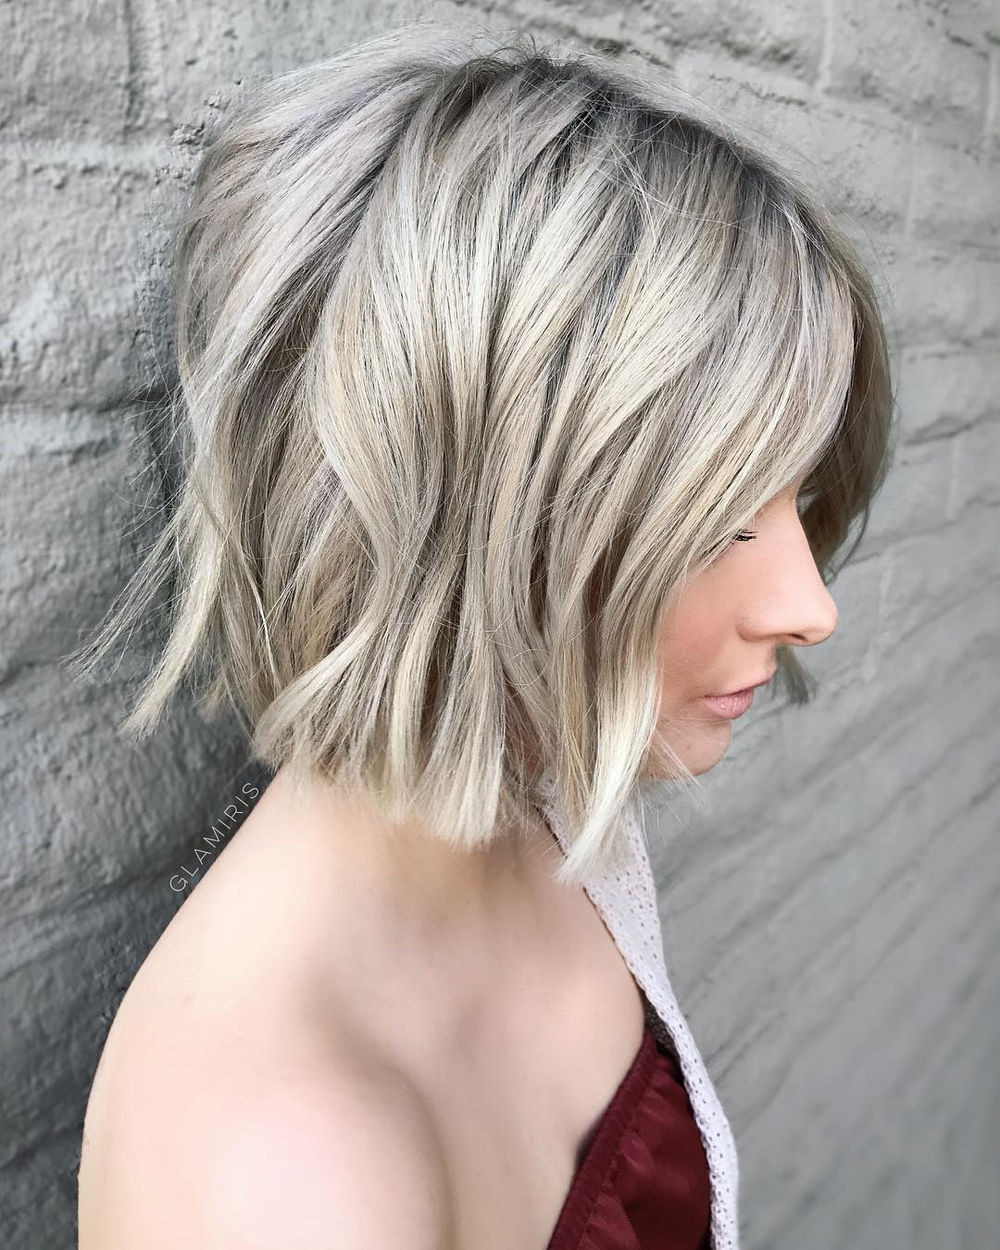 Short Choppy Metallic Blonde Bob